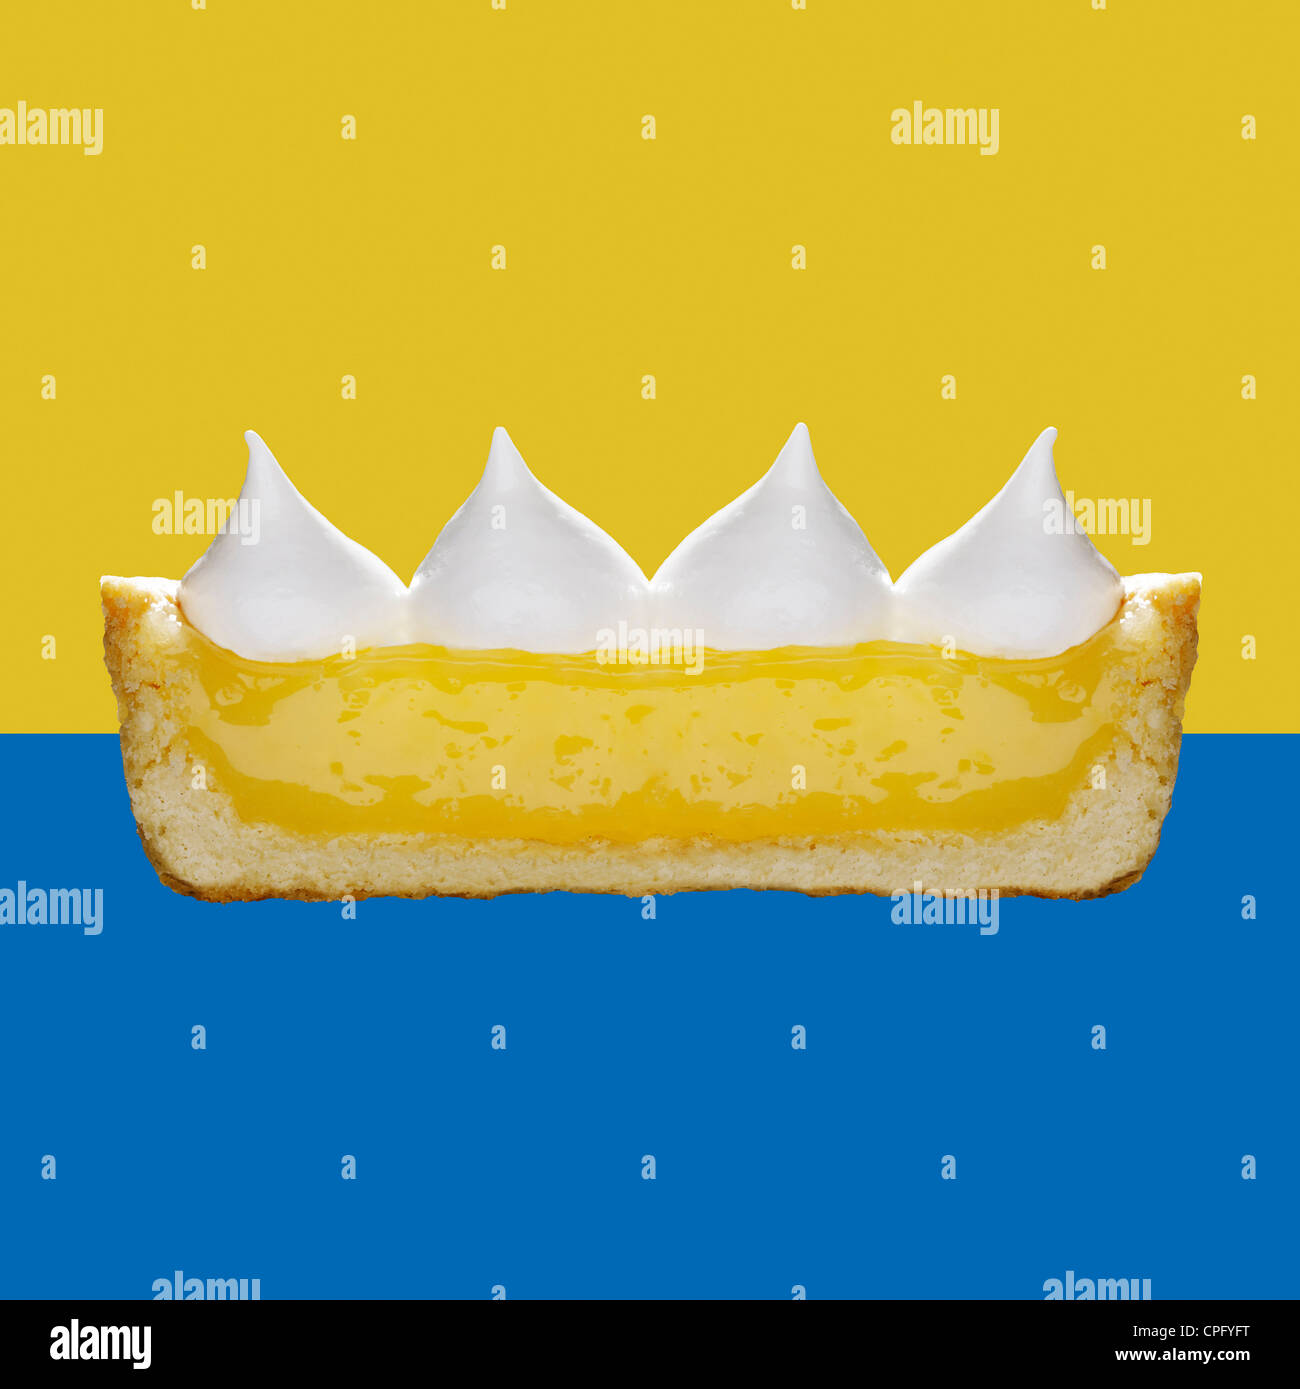 Lemon Meringue Pie, cross section showing the layers - Stock Image